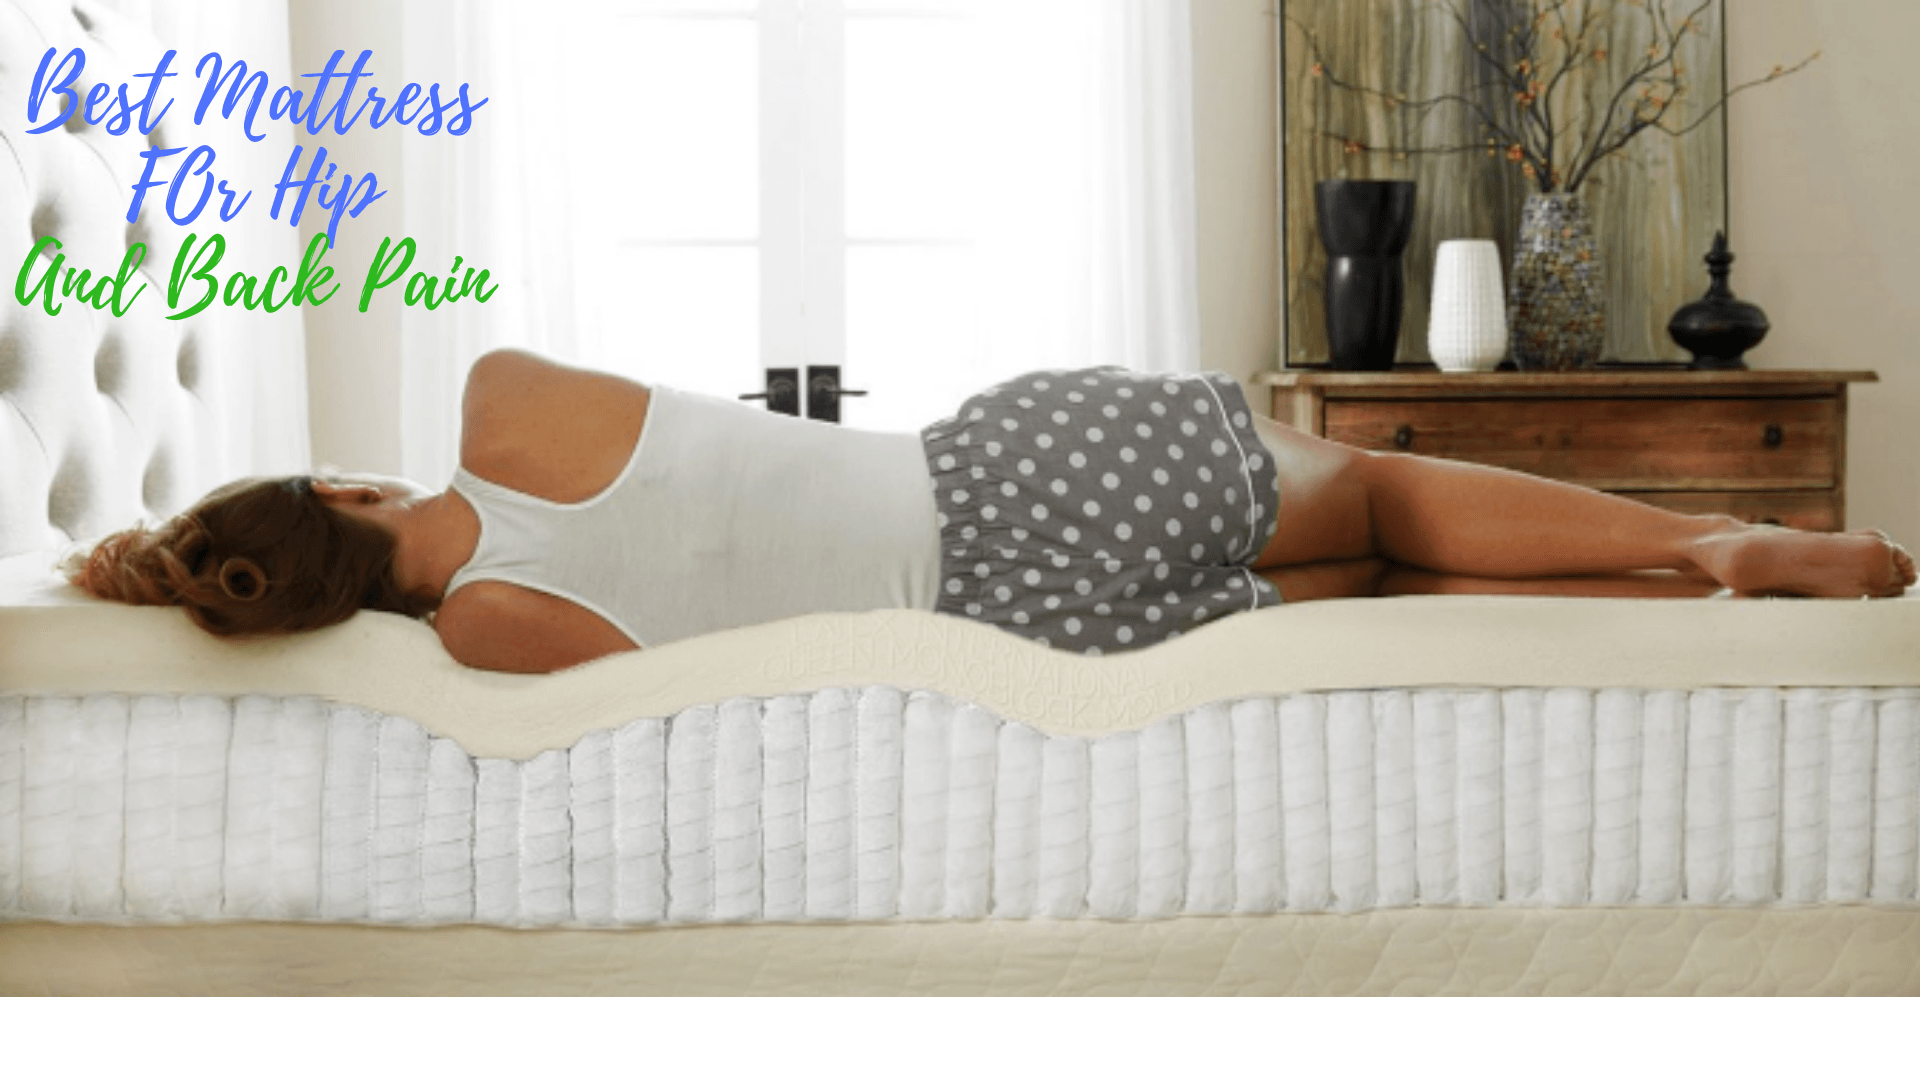 What Kind Of Mattress Is Good For Back Pain Best Mattress For Hip And Back Pain Best Mattress For Hip And Back